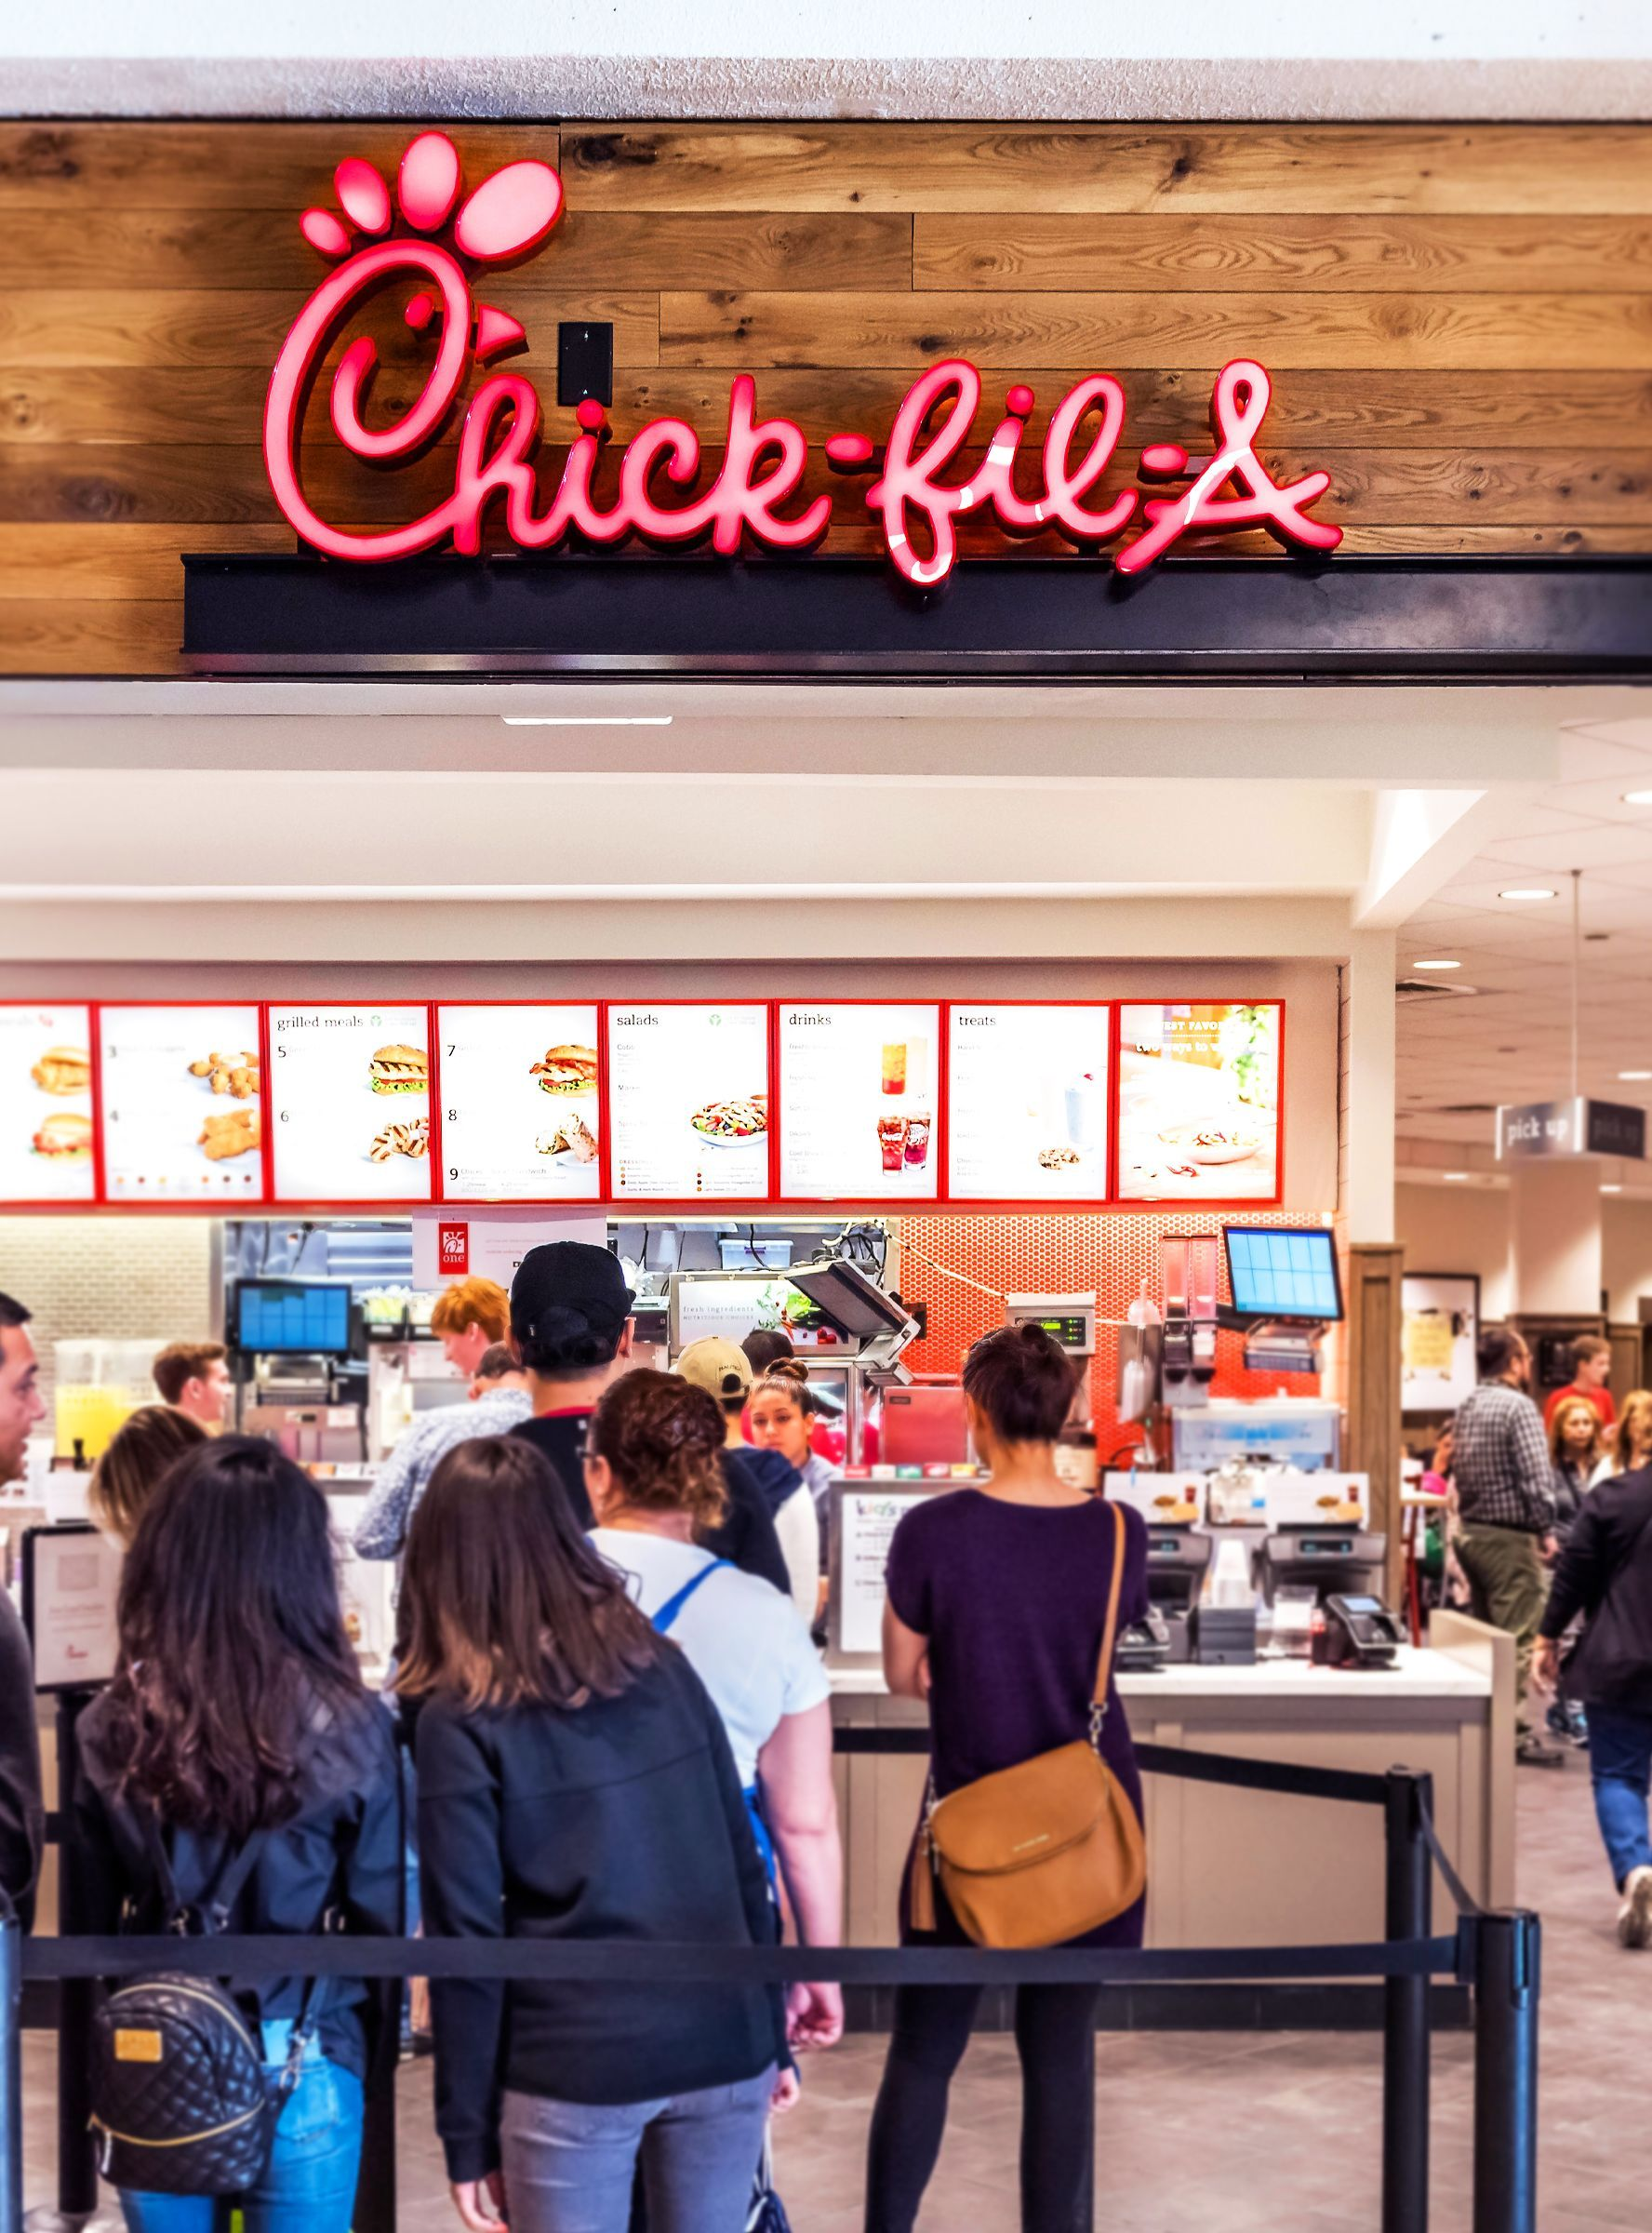 44+ Whats in chick fil a frozen coffee trends